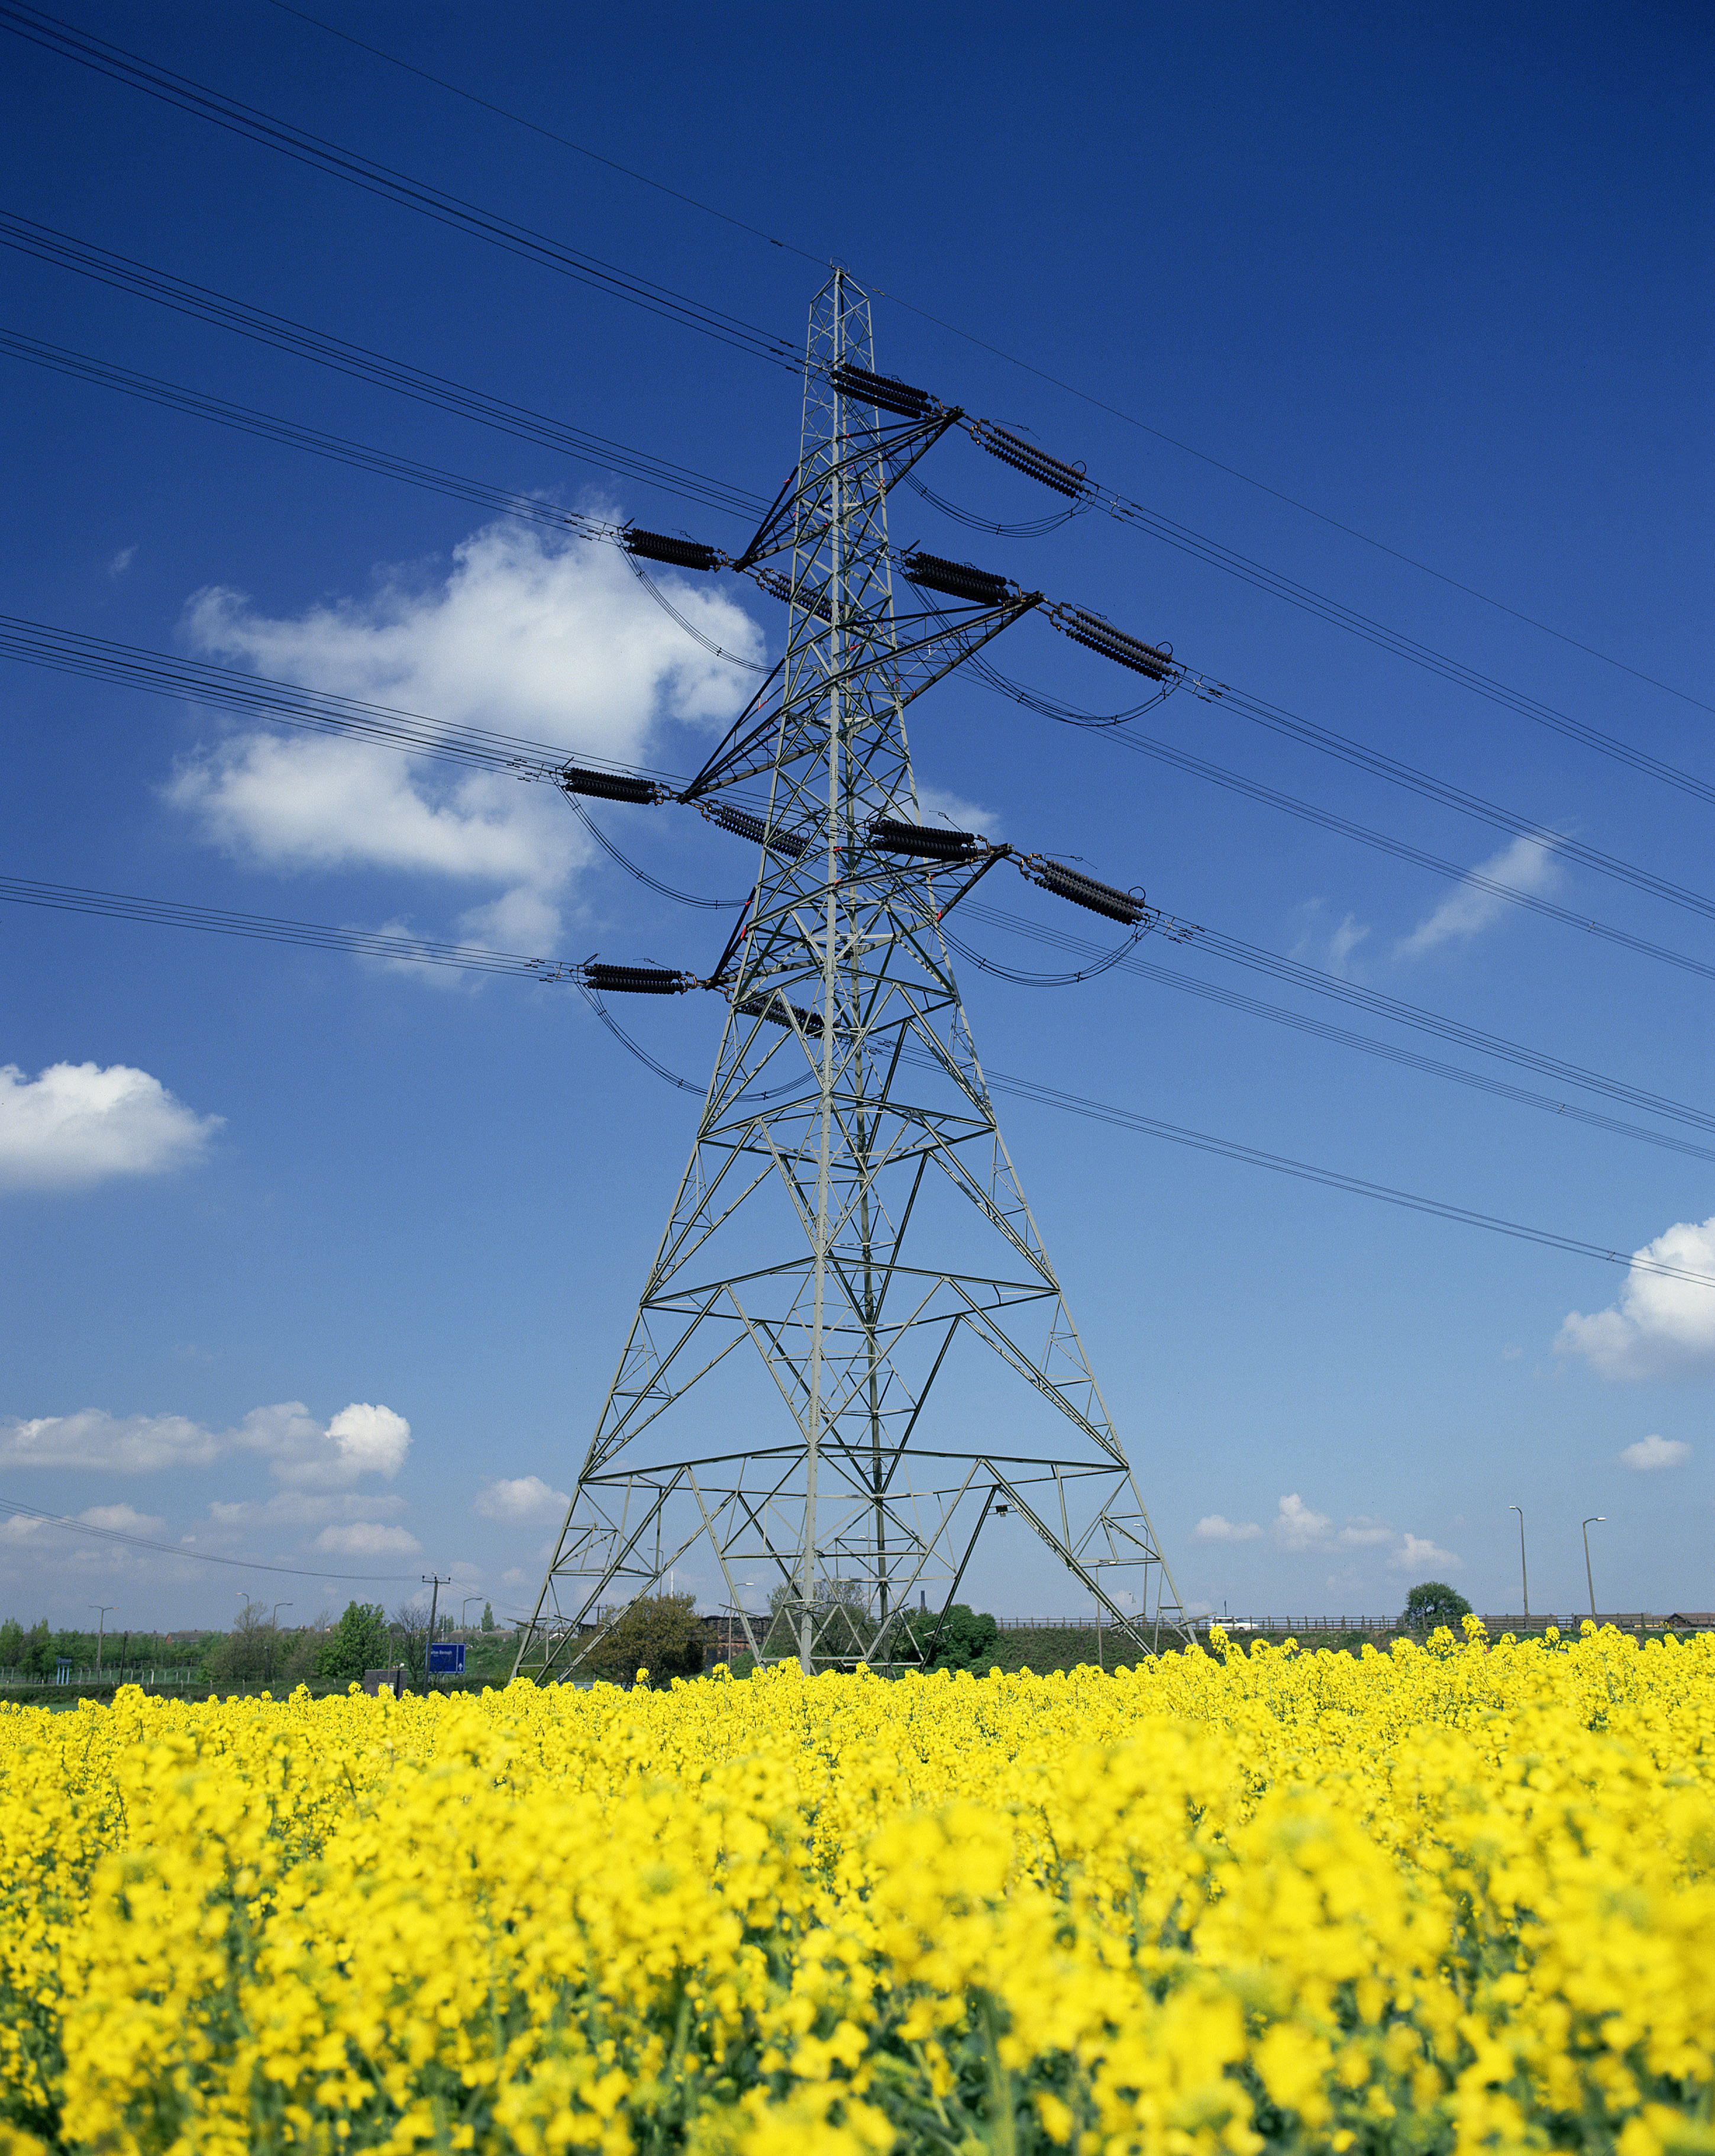 powerlines and tower in HD Wallpaper